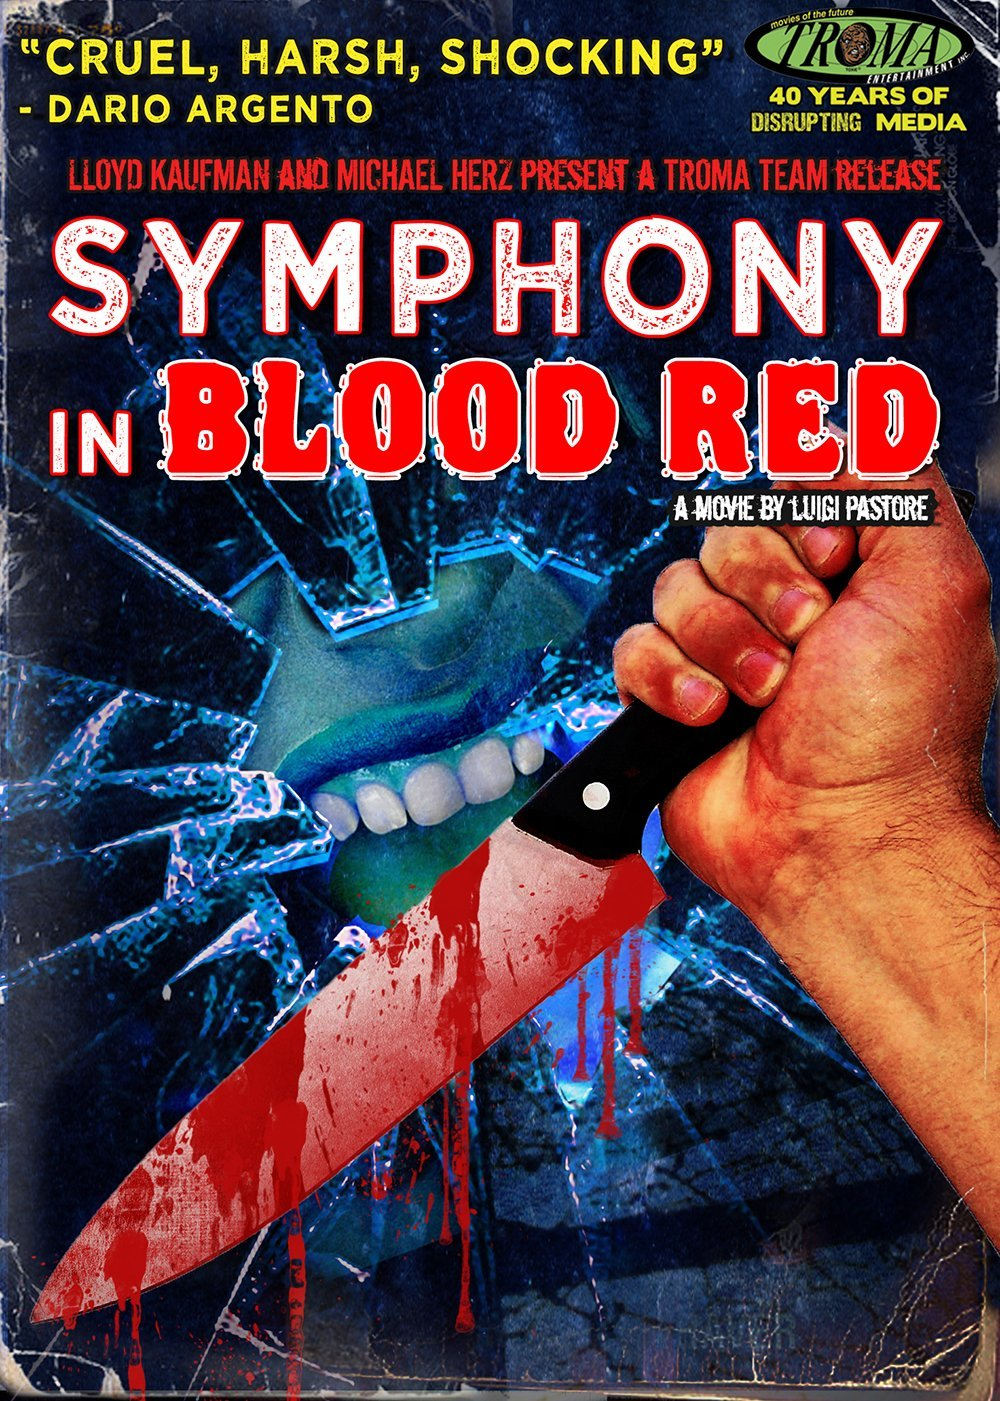 symphony in blood red 2010 vostfr 81ccuKpA2lL._SL1401_